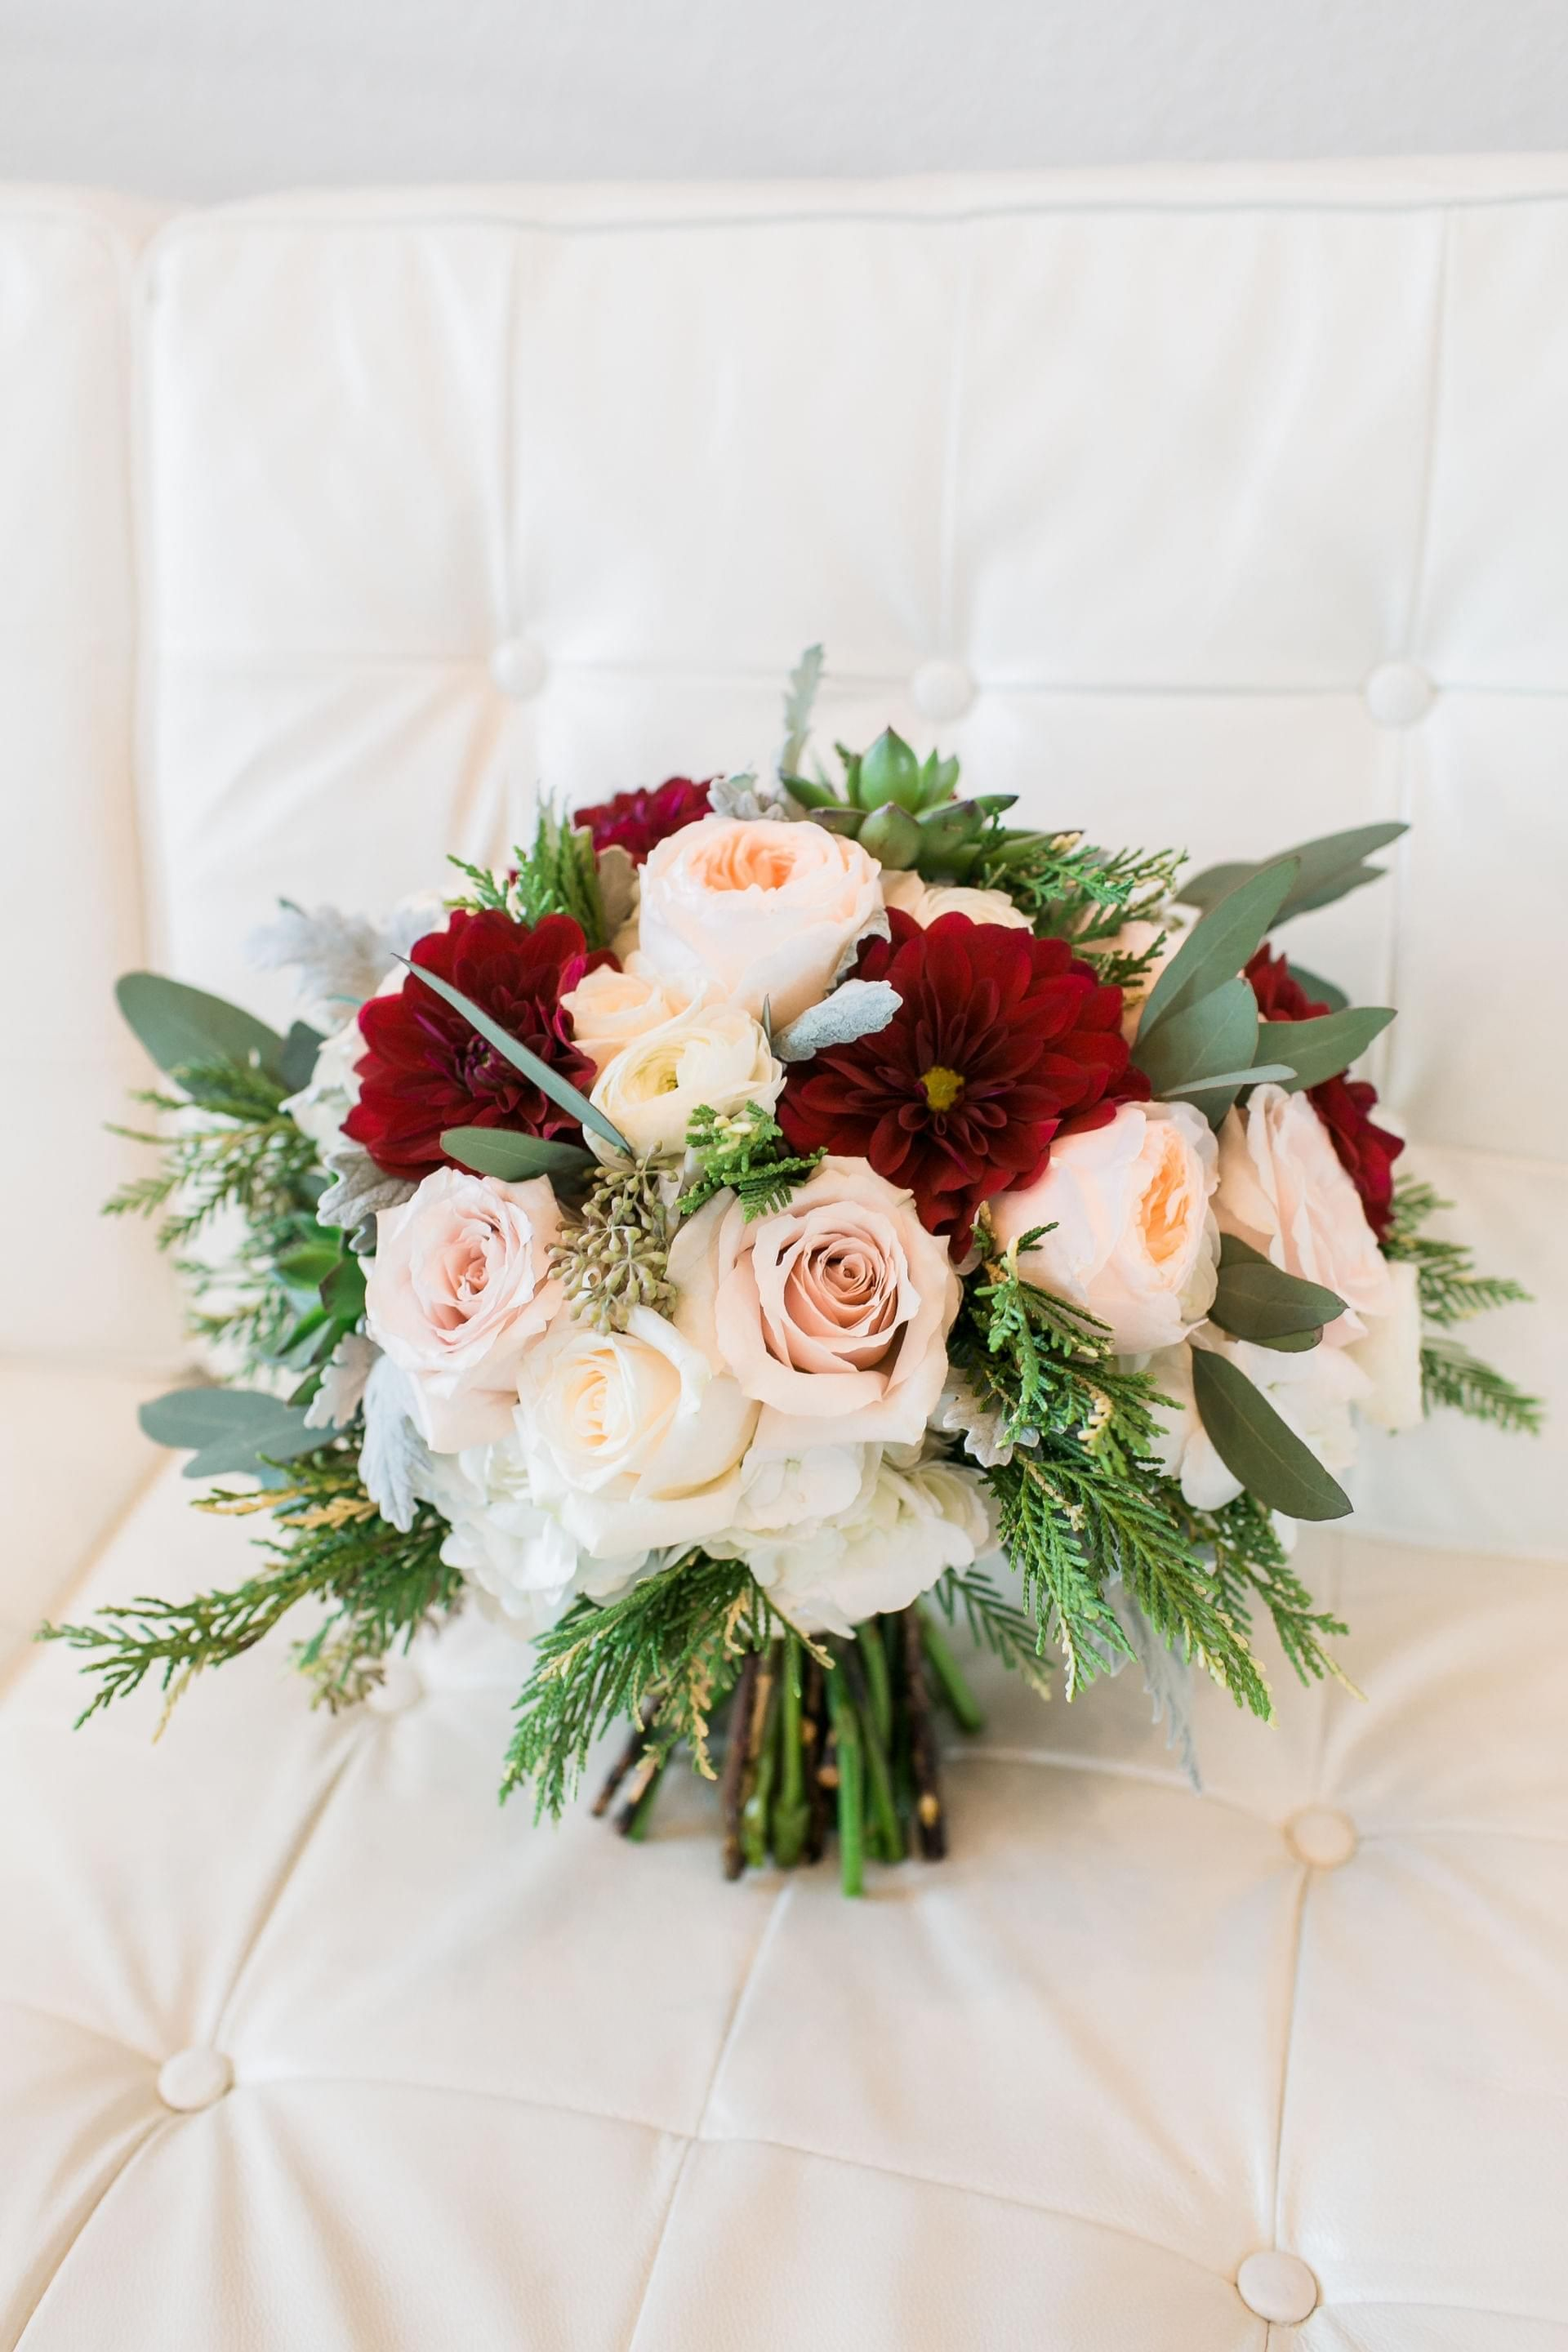 The smarter way to wed juliet garden rose dusty pink and rhodes - Garden rose bouquet ...